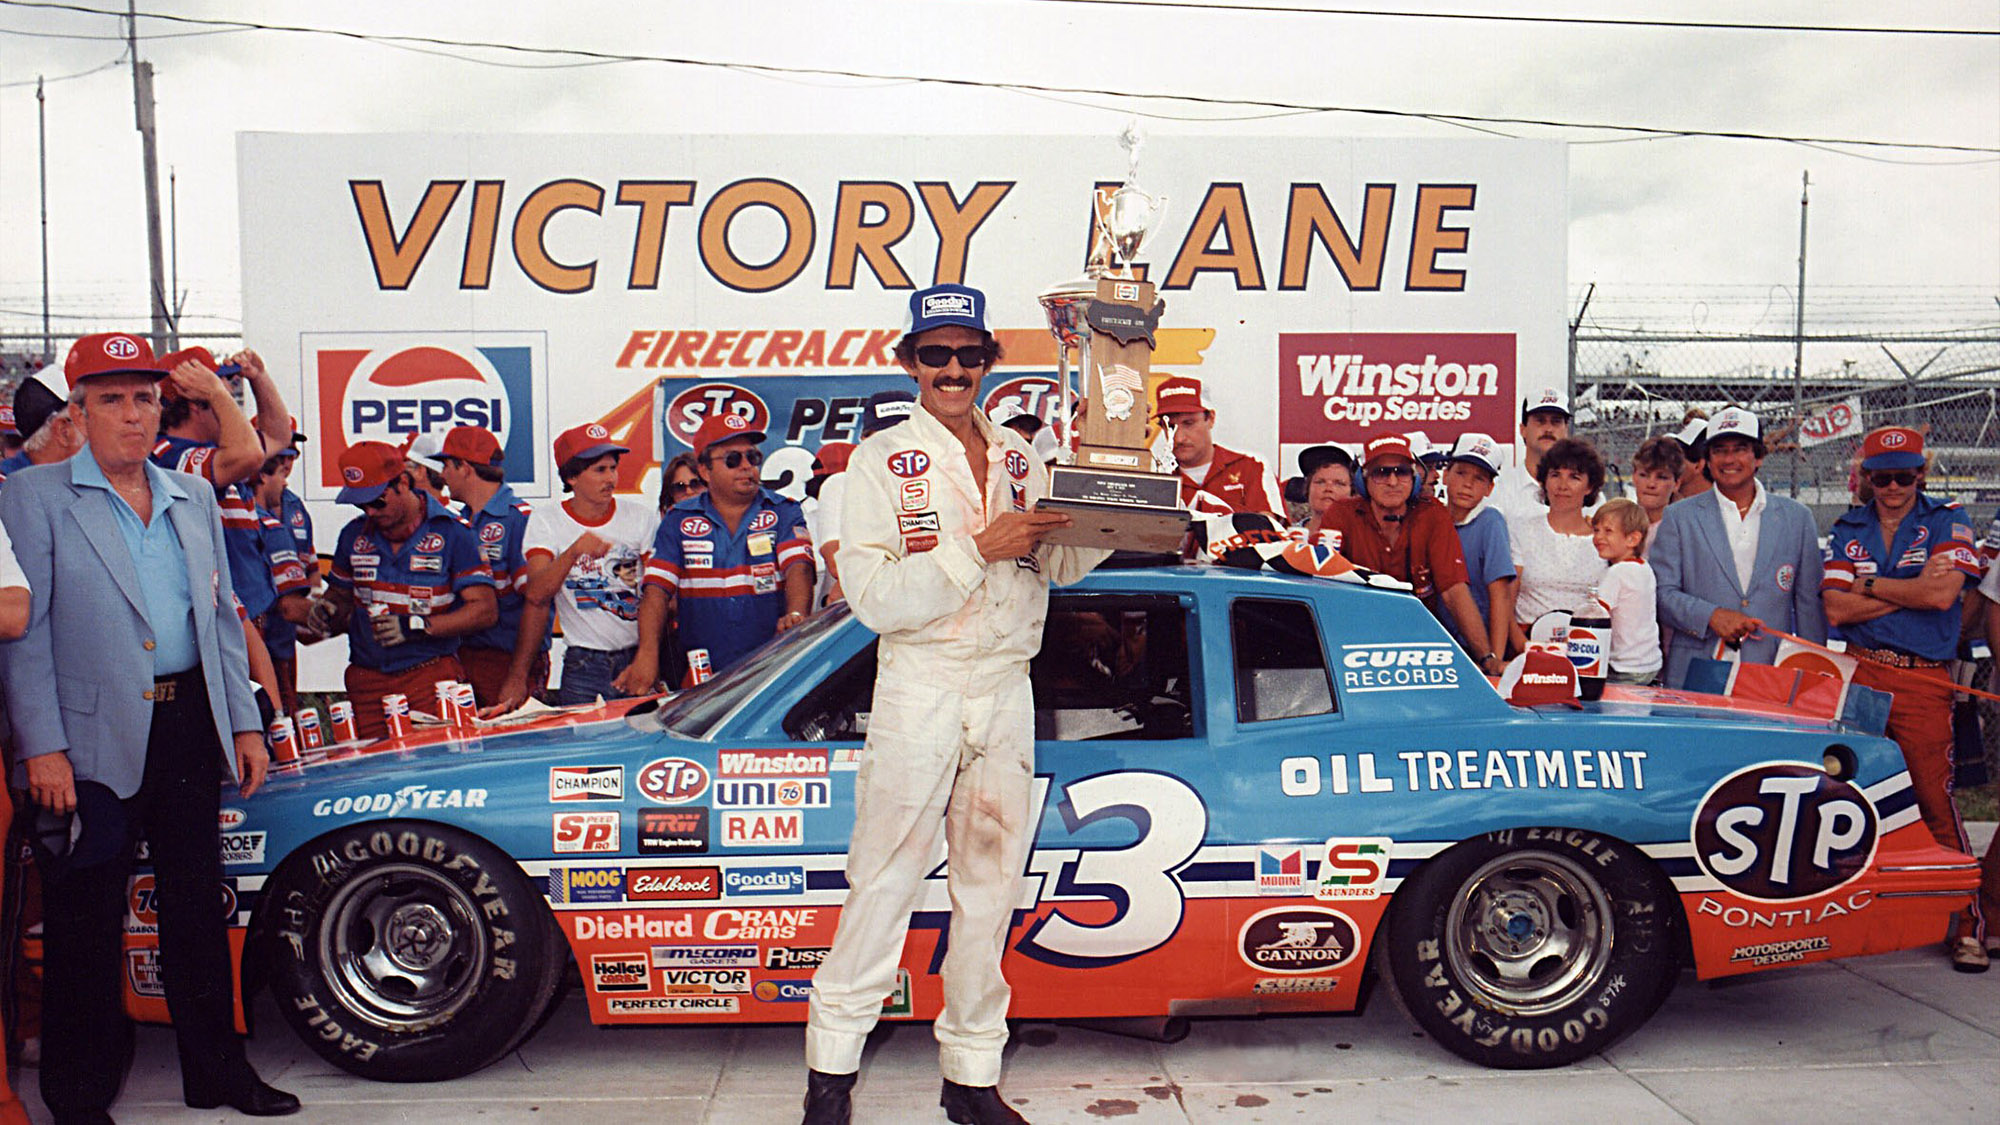 Richard Petty celebrates winning the Firecracker 400 at Daytona in 1984